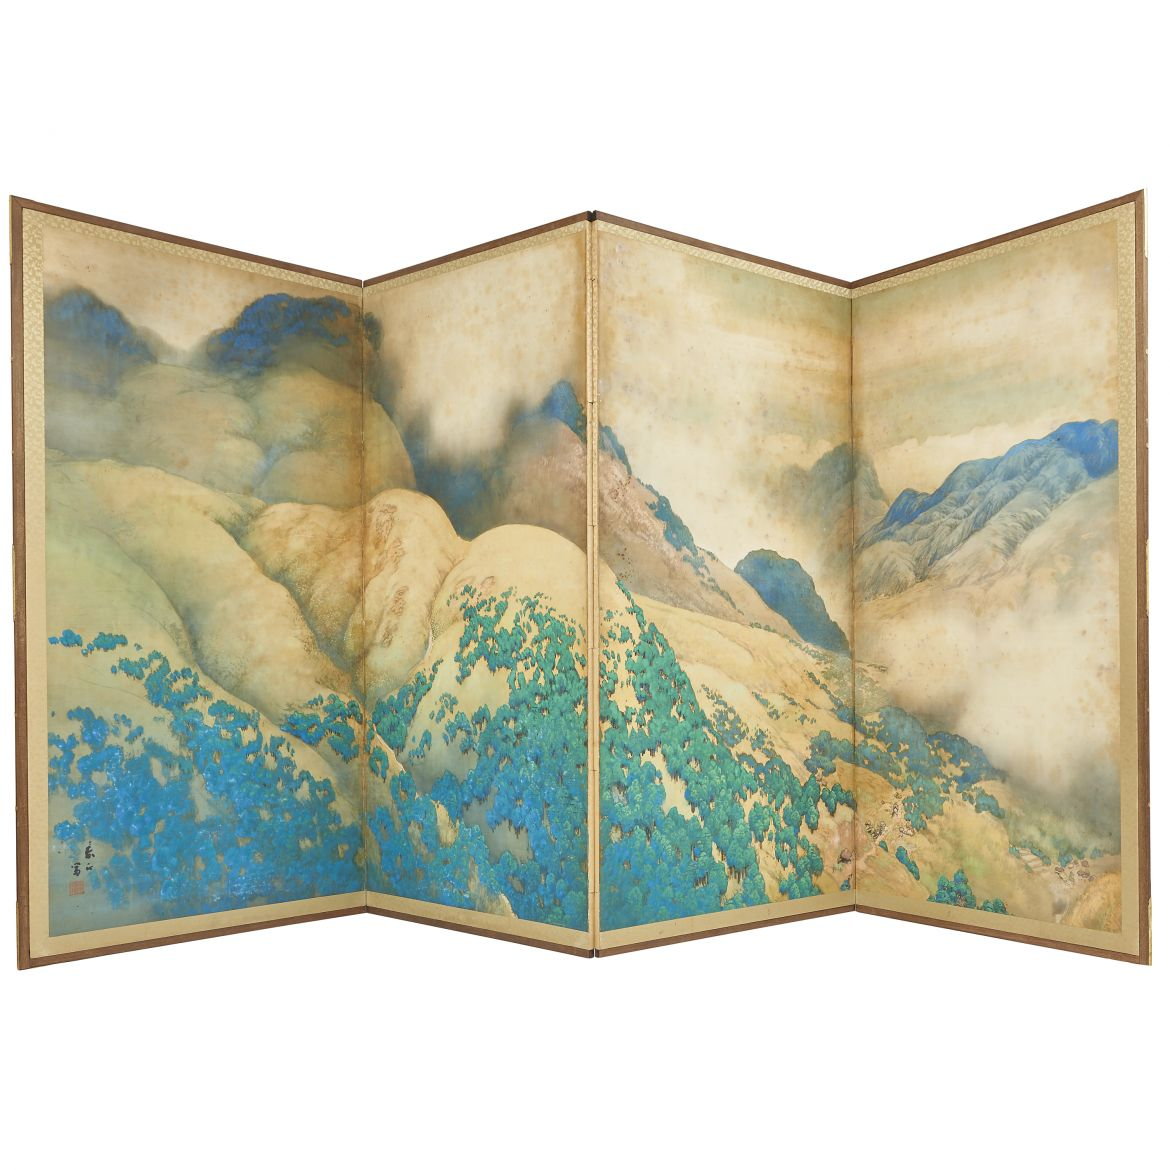 Large Four Fold Japanese Screen